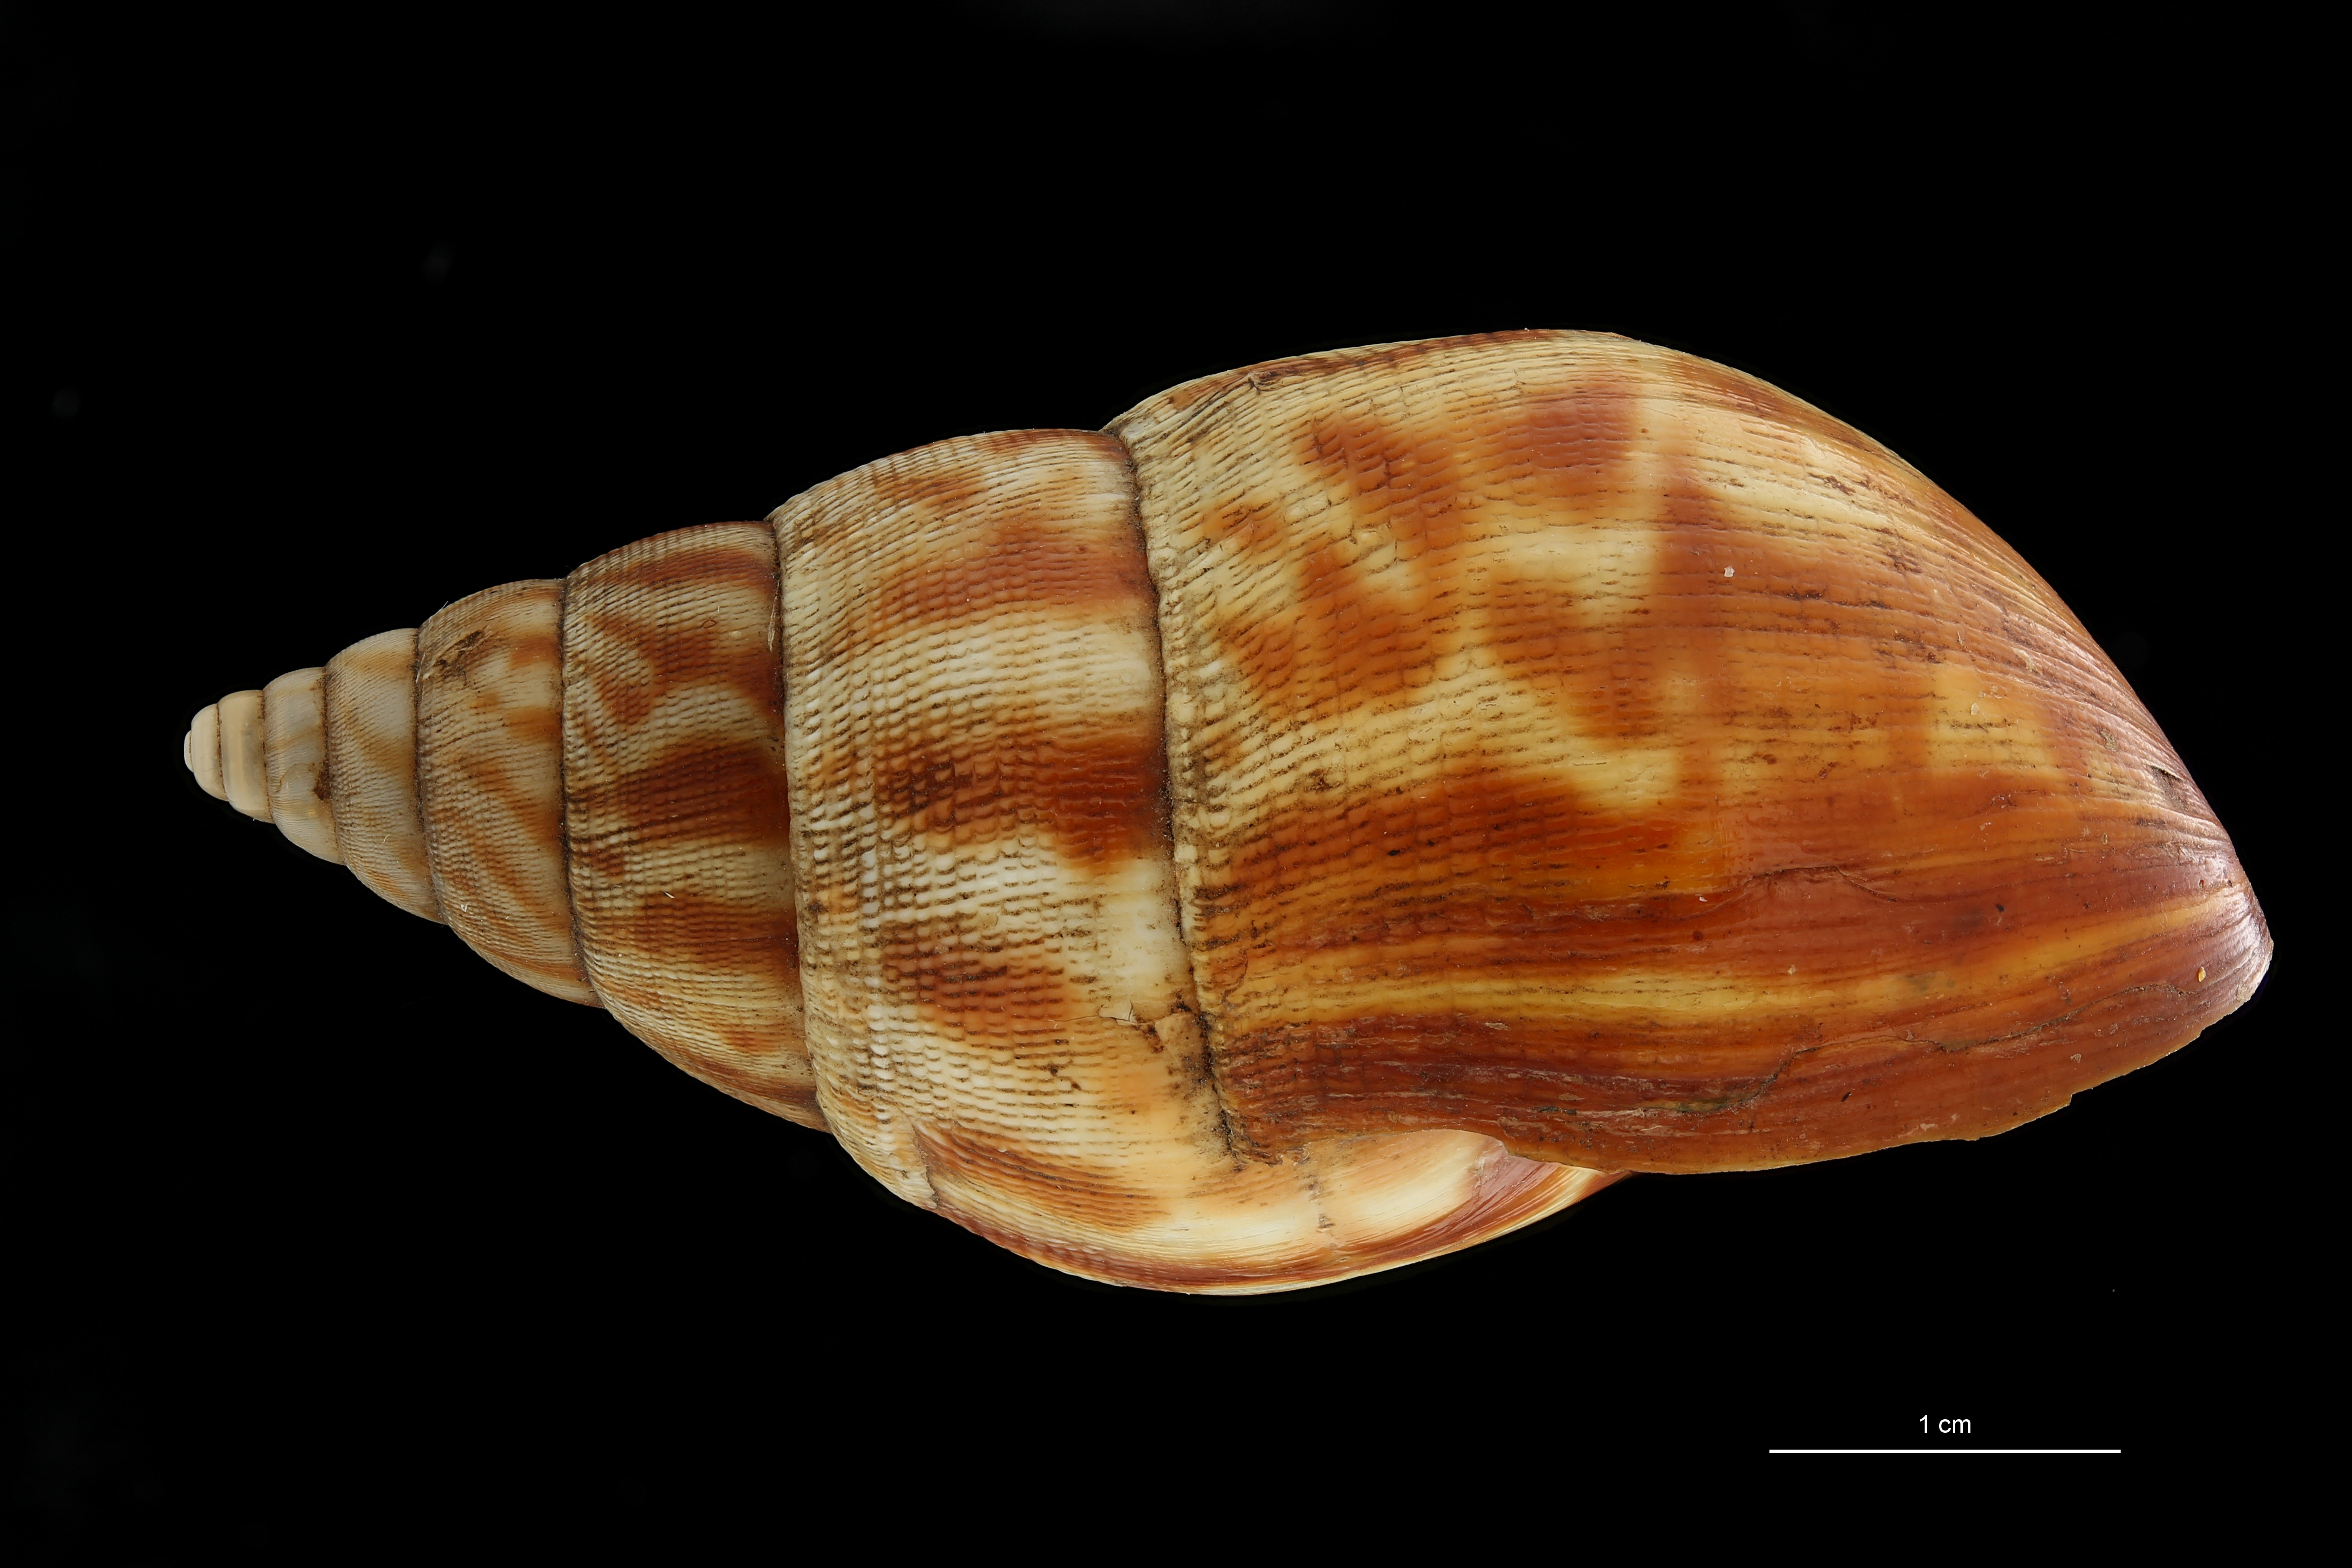 BE-RBINS-INV MT 164 Achatina morrelli Cotype L ZS DMap Scaled.jpg